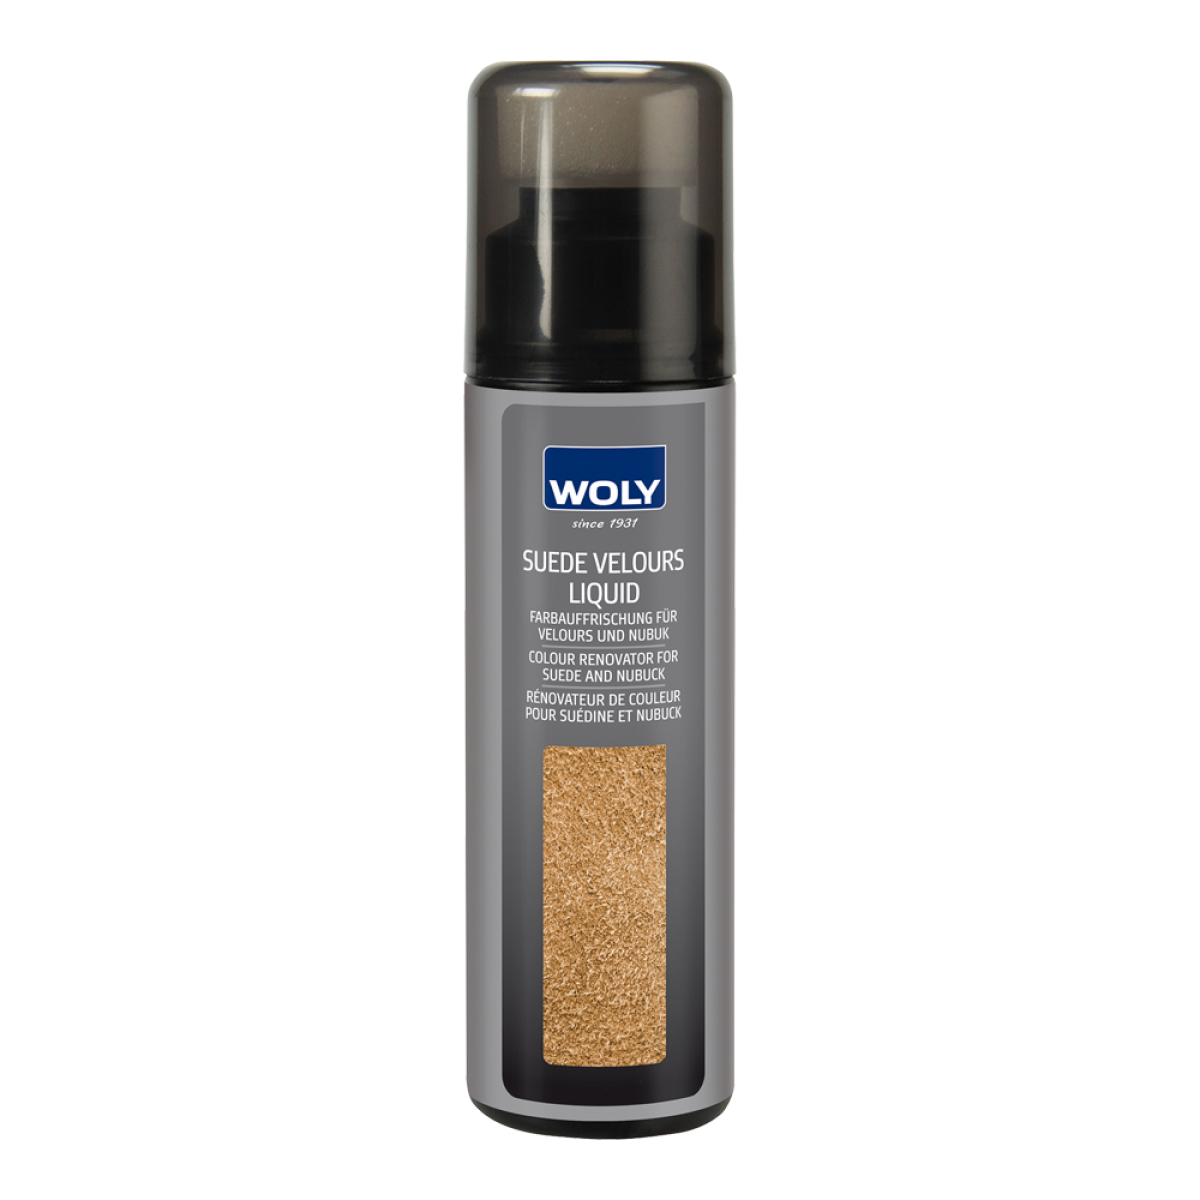 Woly Suede Velours Liquid 75ml Neutral-31